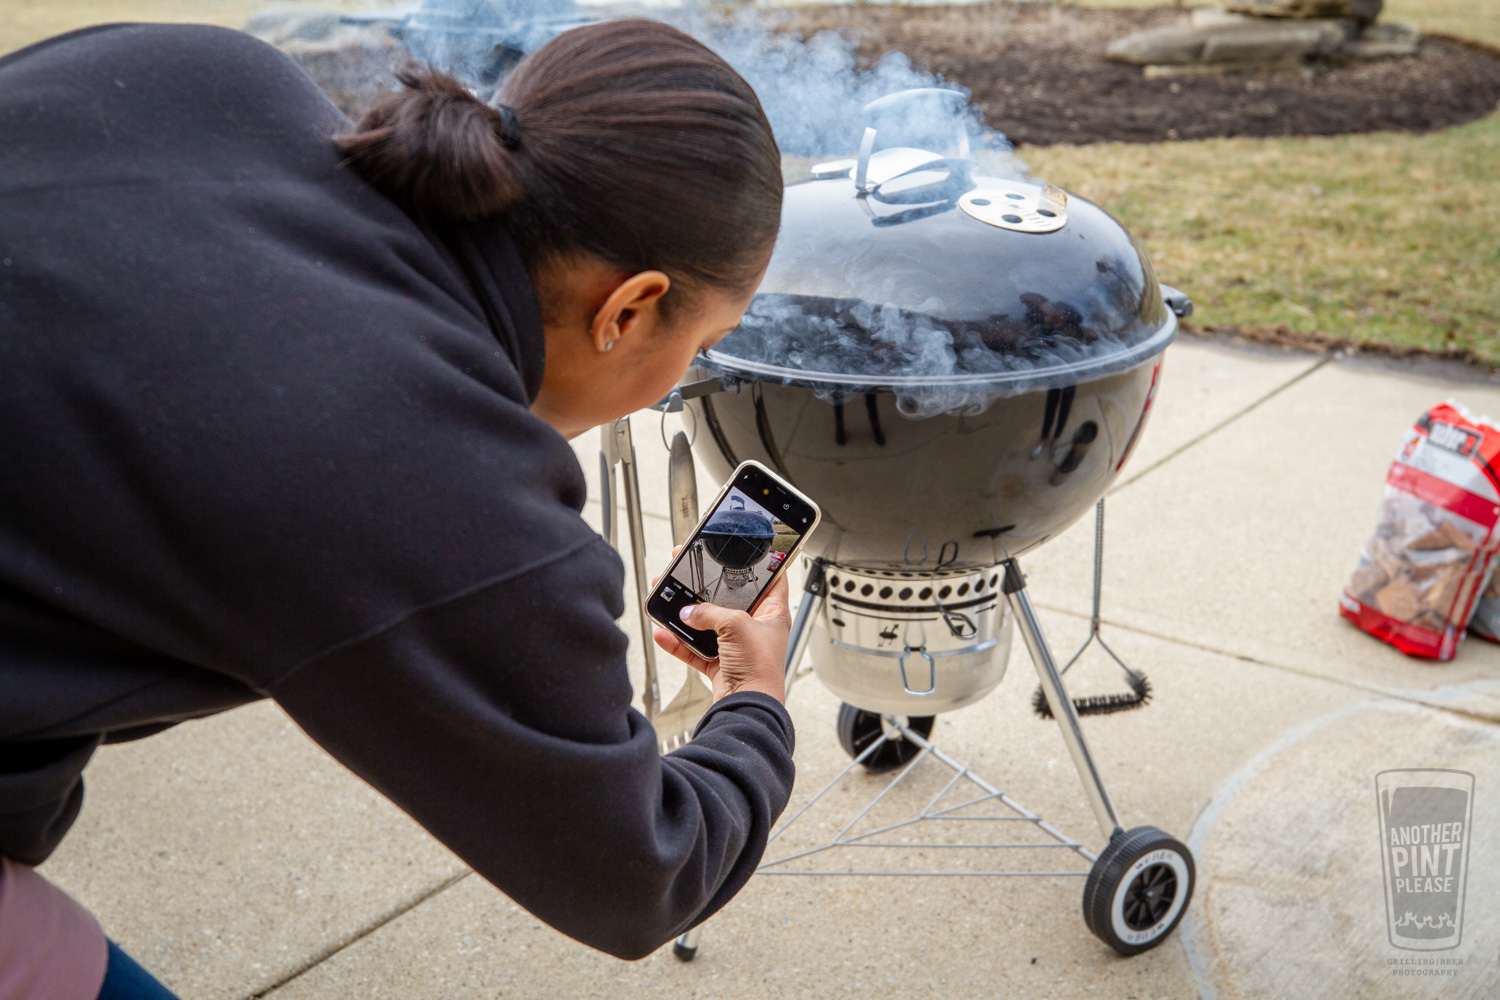 Shooting Weber Kettle with iPhone